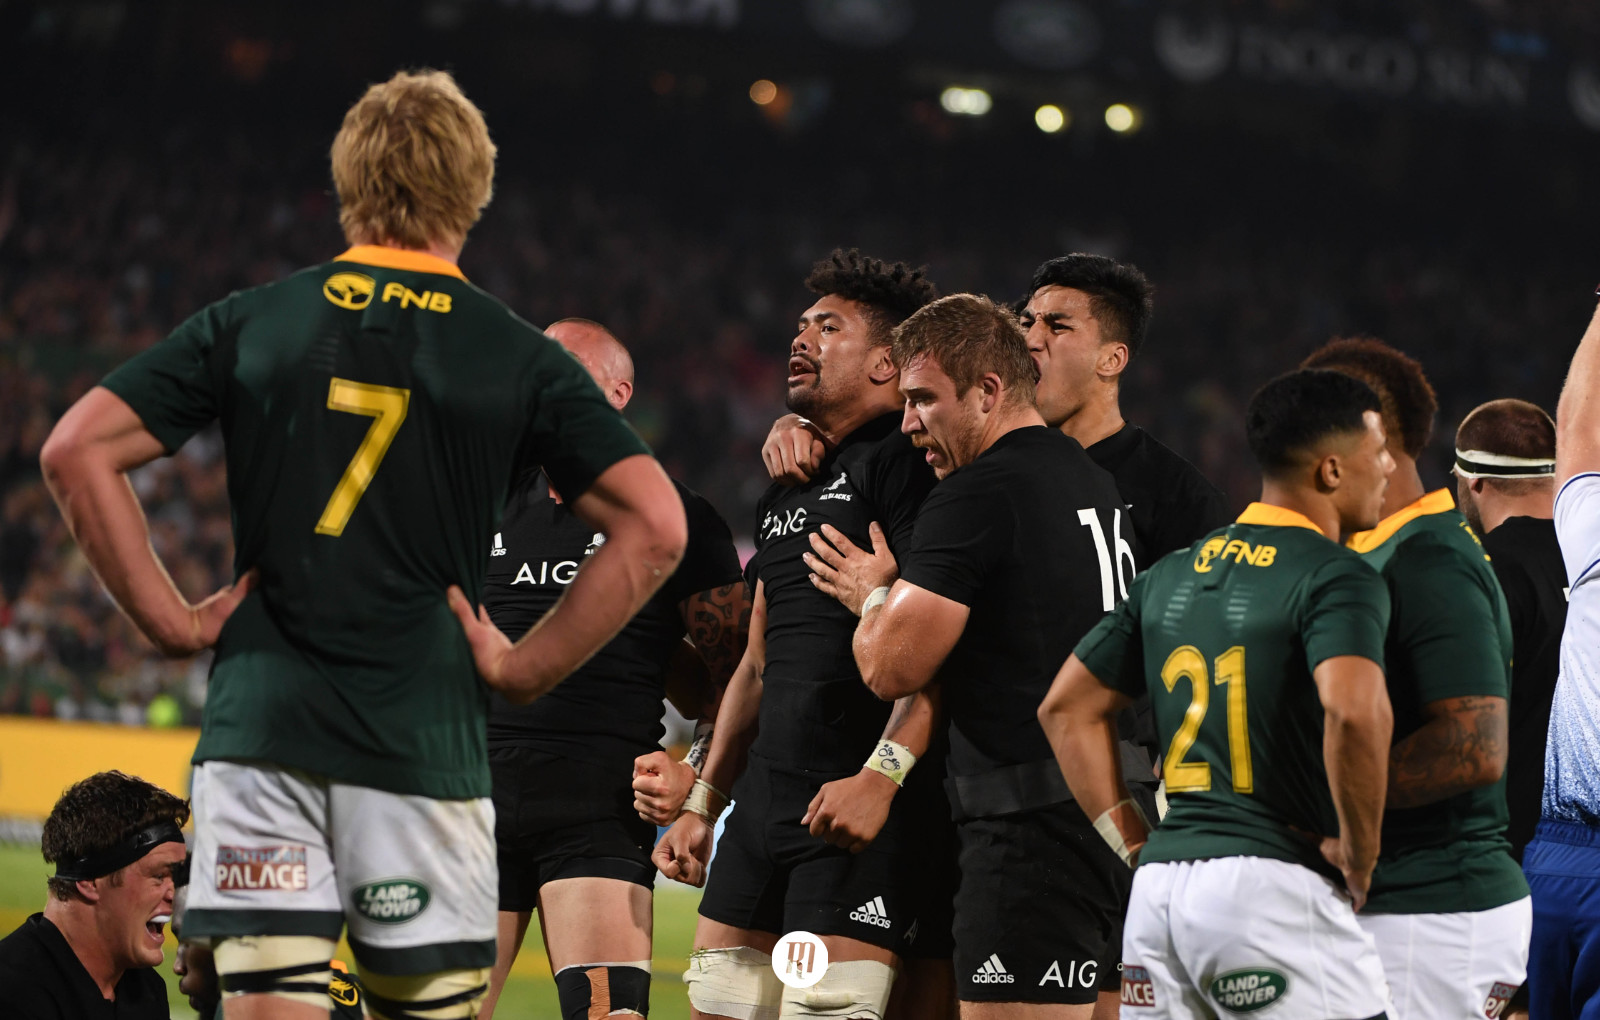 Could rivals' eleventh-hour tinkering hand Wales, Ireland and South Africa early World Cup advantage?